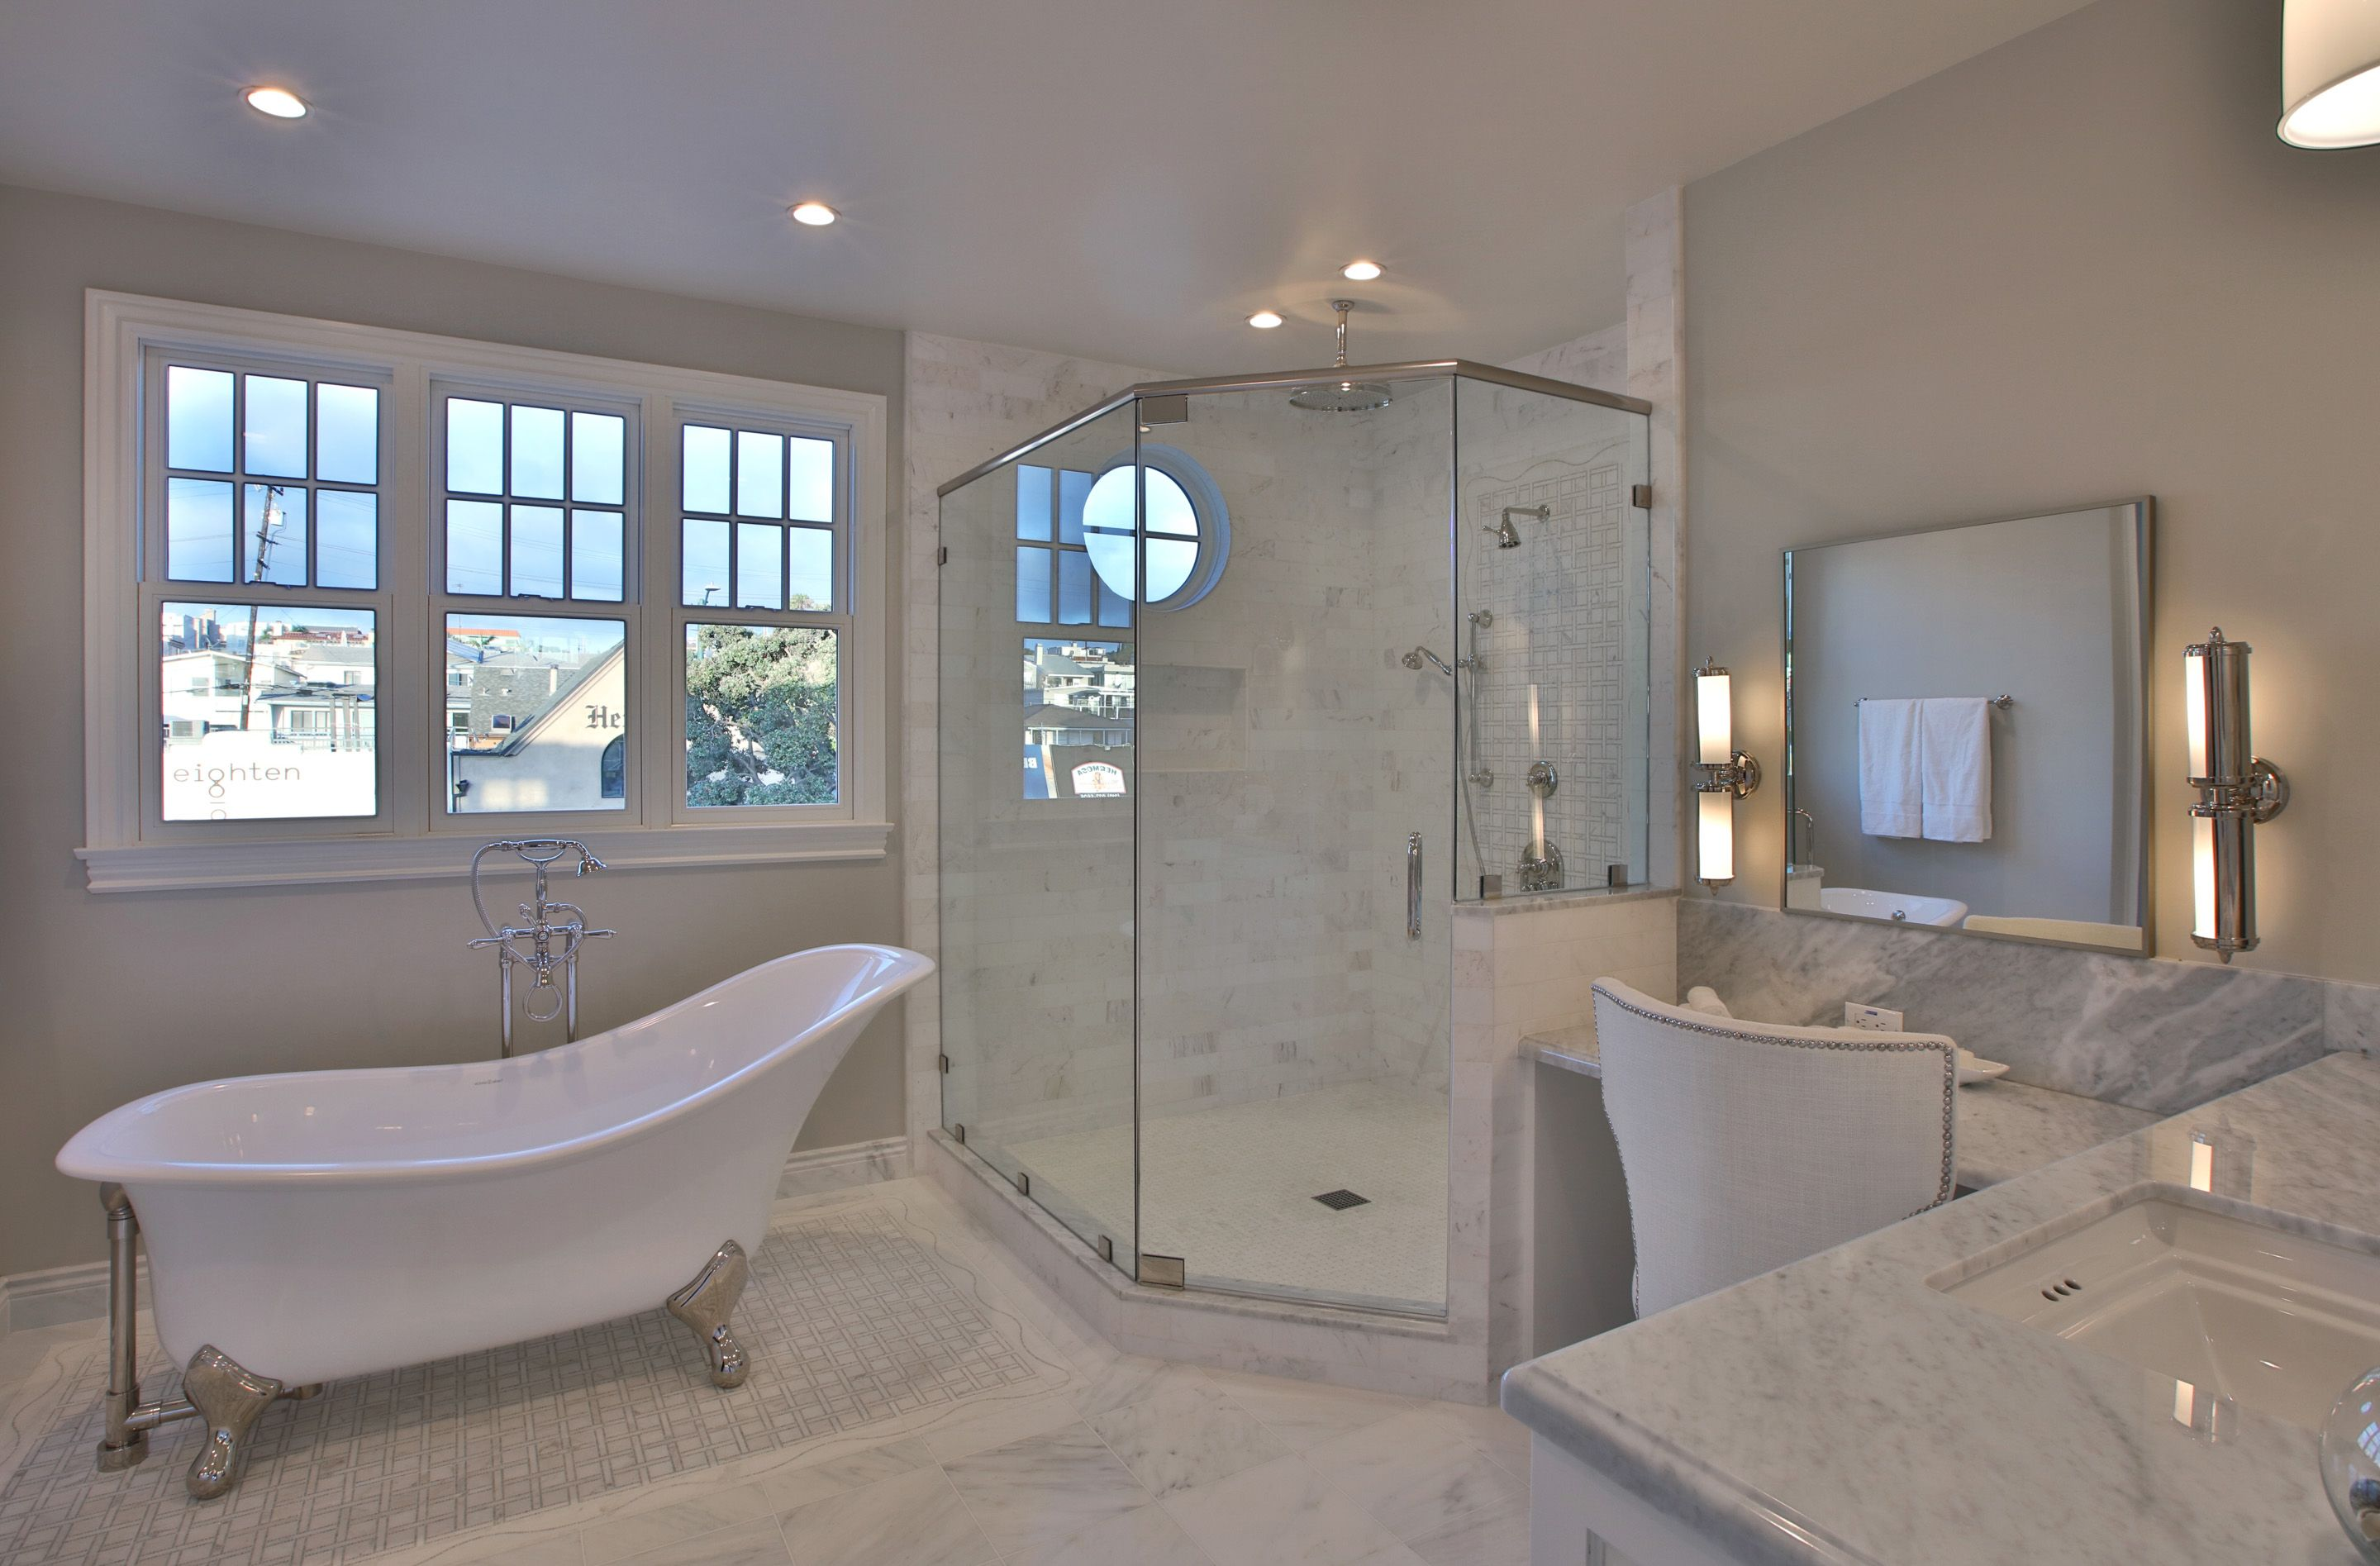 Luxury Master Bath With Clawfoot Tub